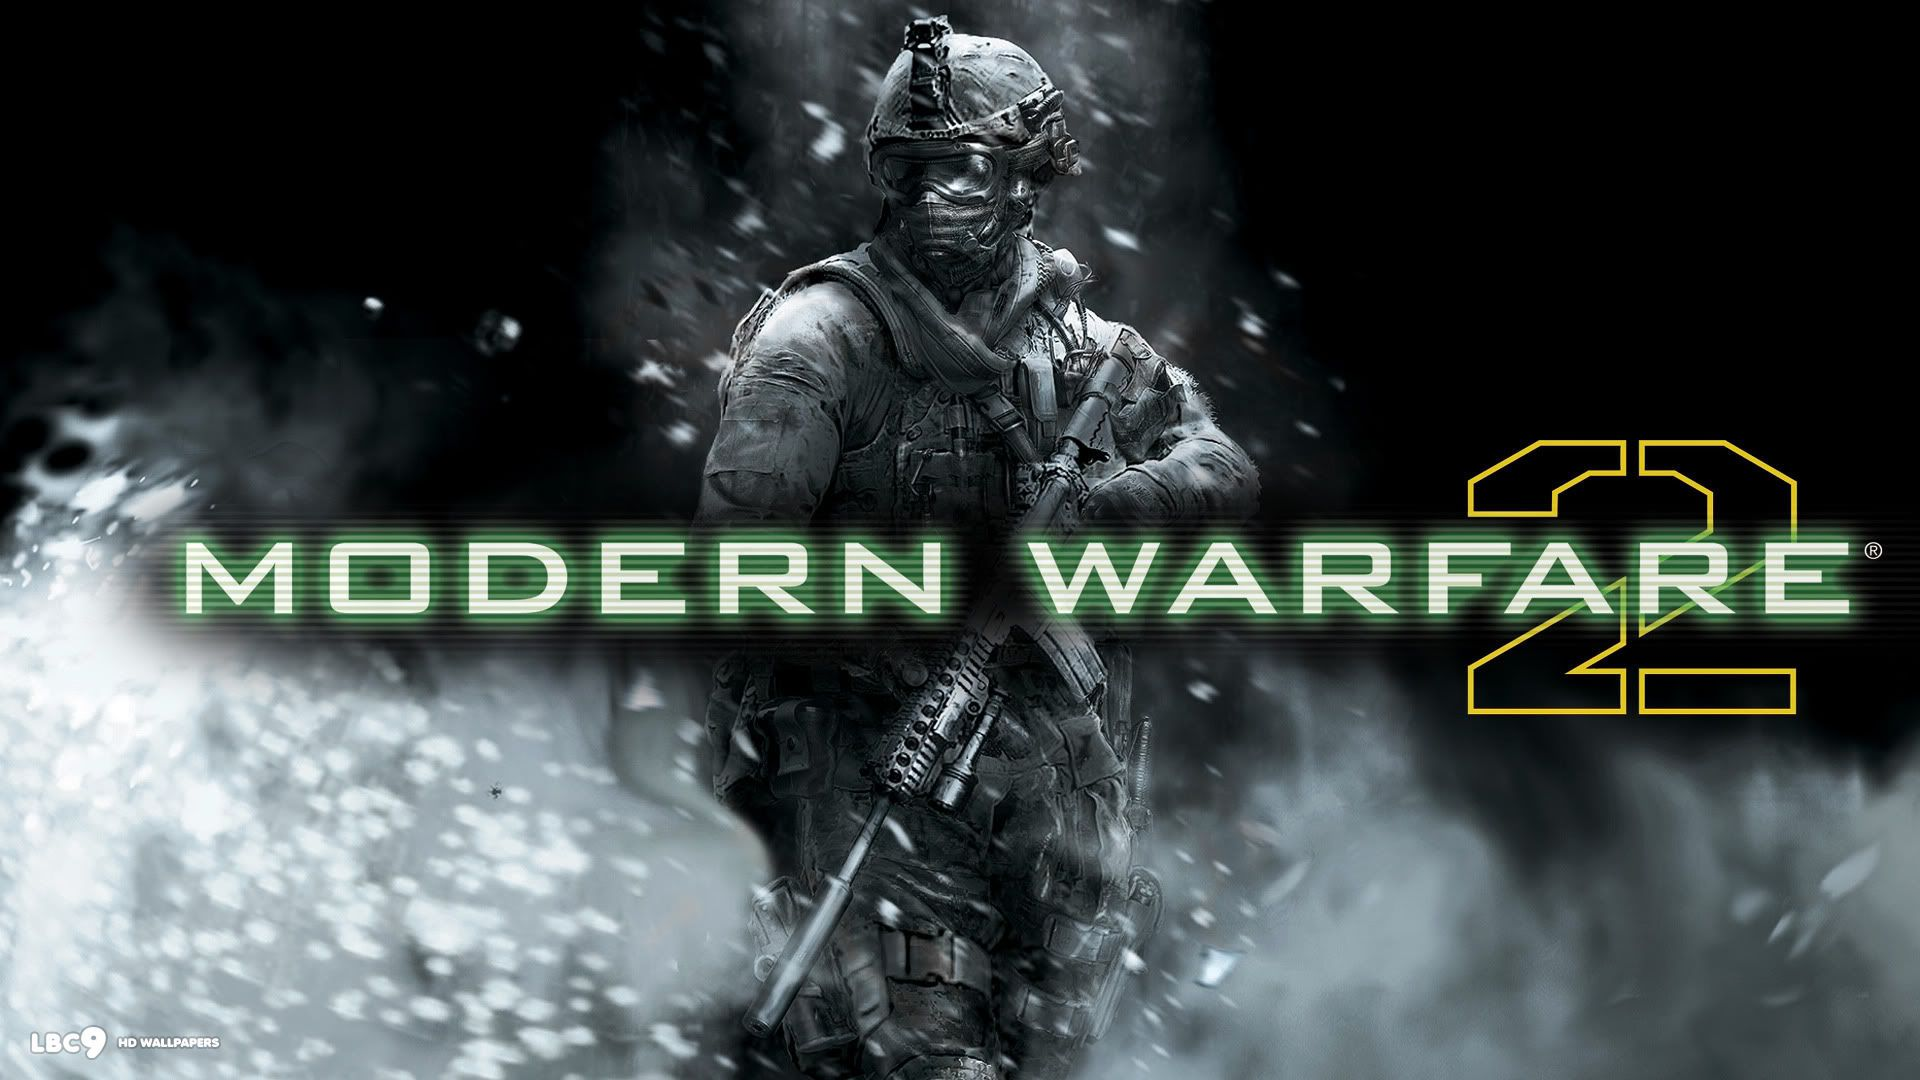 Should Call Of Duty Modern Warfare 2 Be Remastered Mmoexaminer